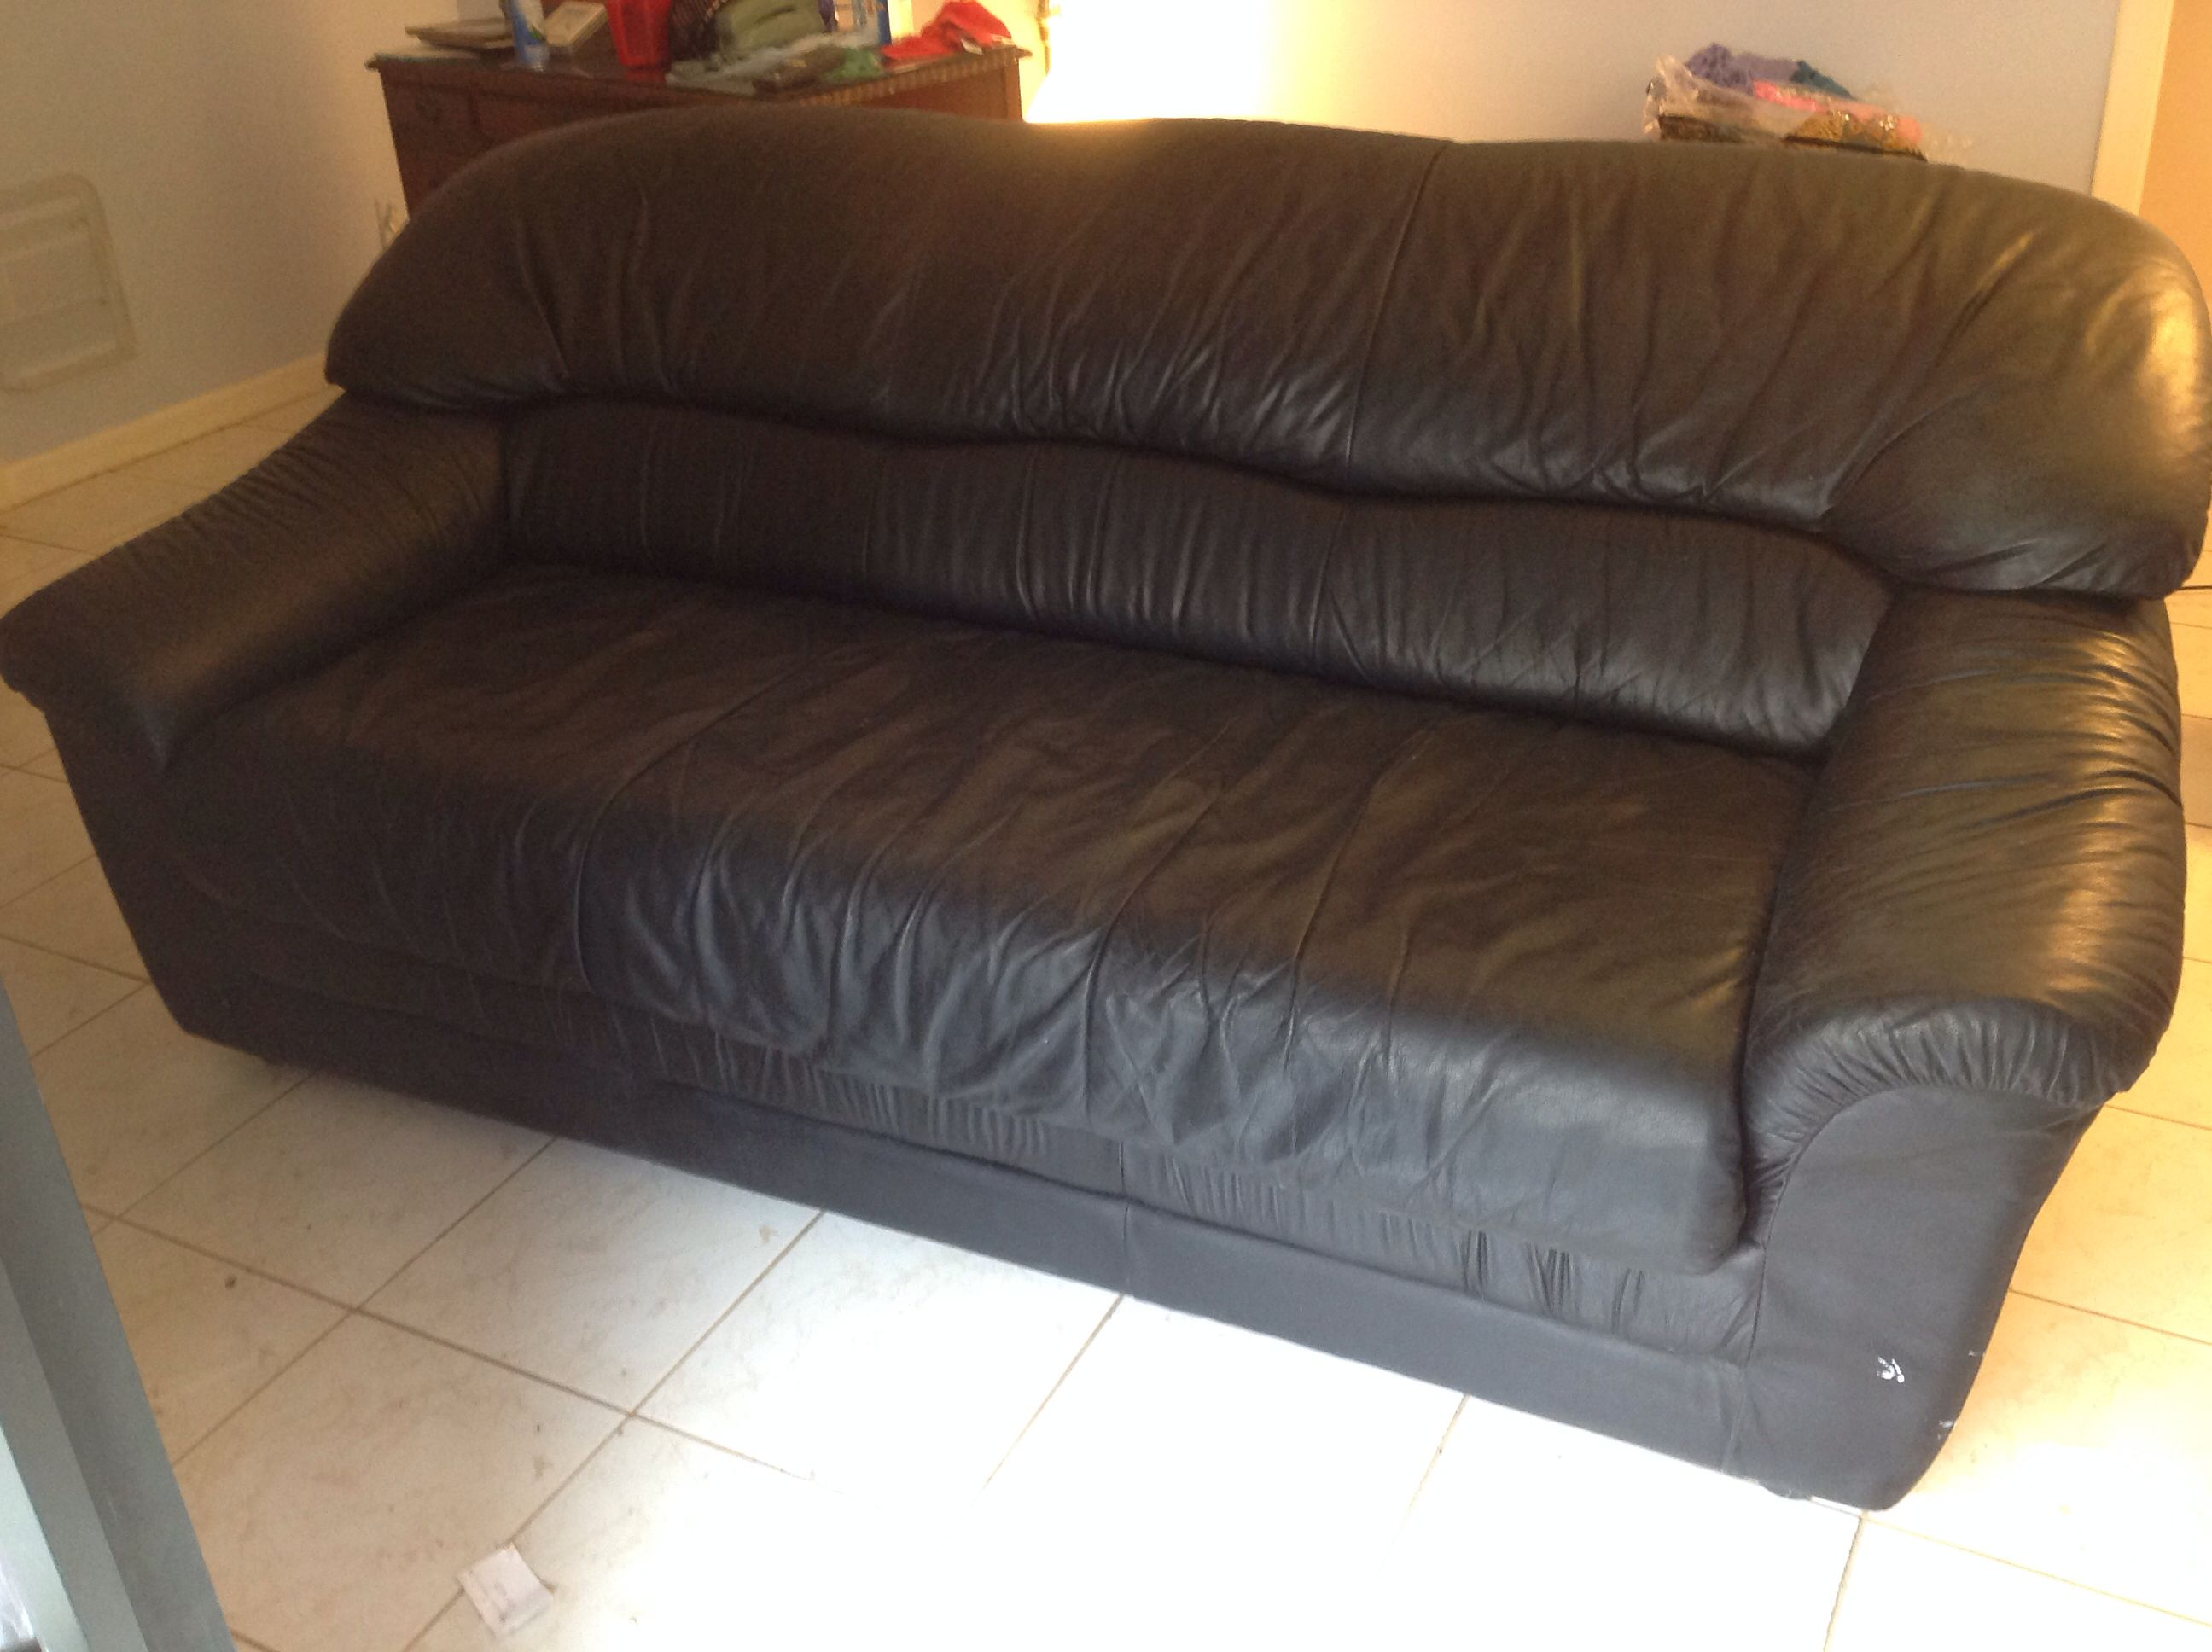 Black natuzzi all leather sofa bed for sale in kings point